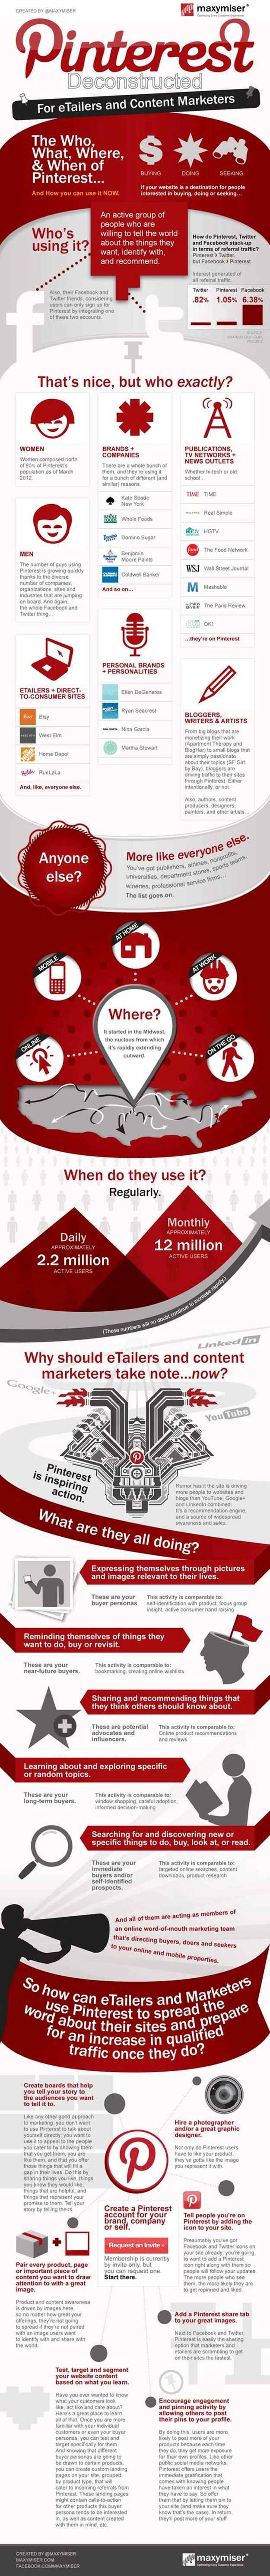 How marketers, online retailers, and others can use Pinterest. More: http://www.marketingprofs.com/chirp/2012/7478/pinterest-the-who-what-and-where-and-how-you-can-use-it-infographic?adref=pinterest